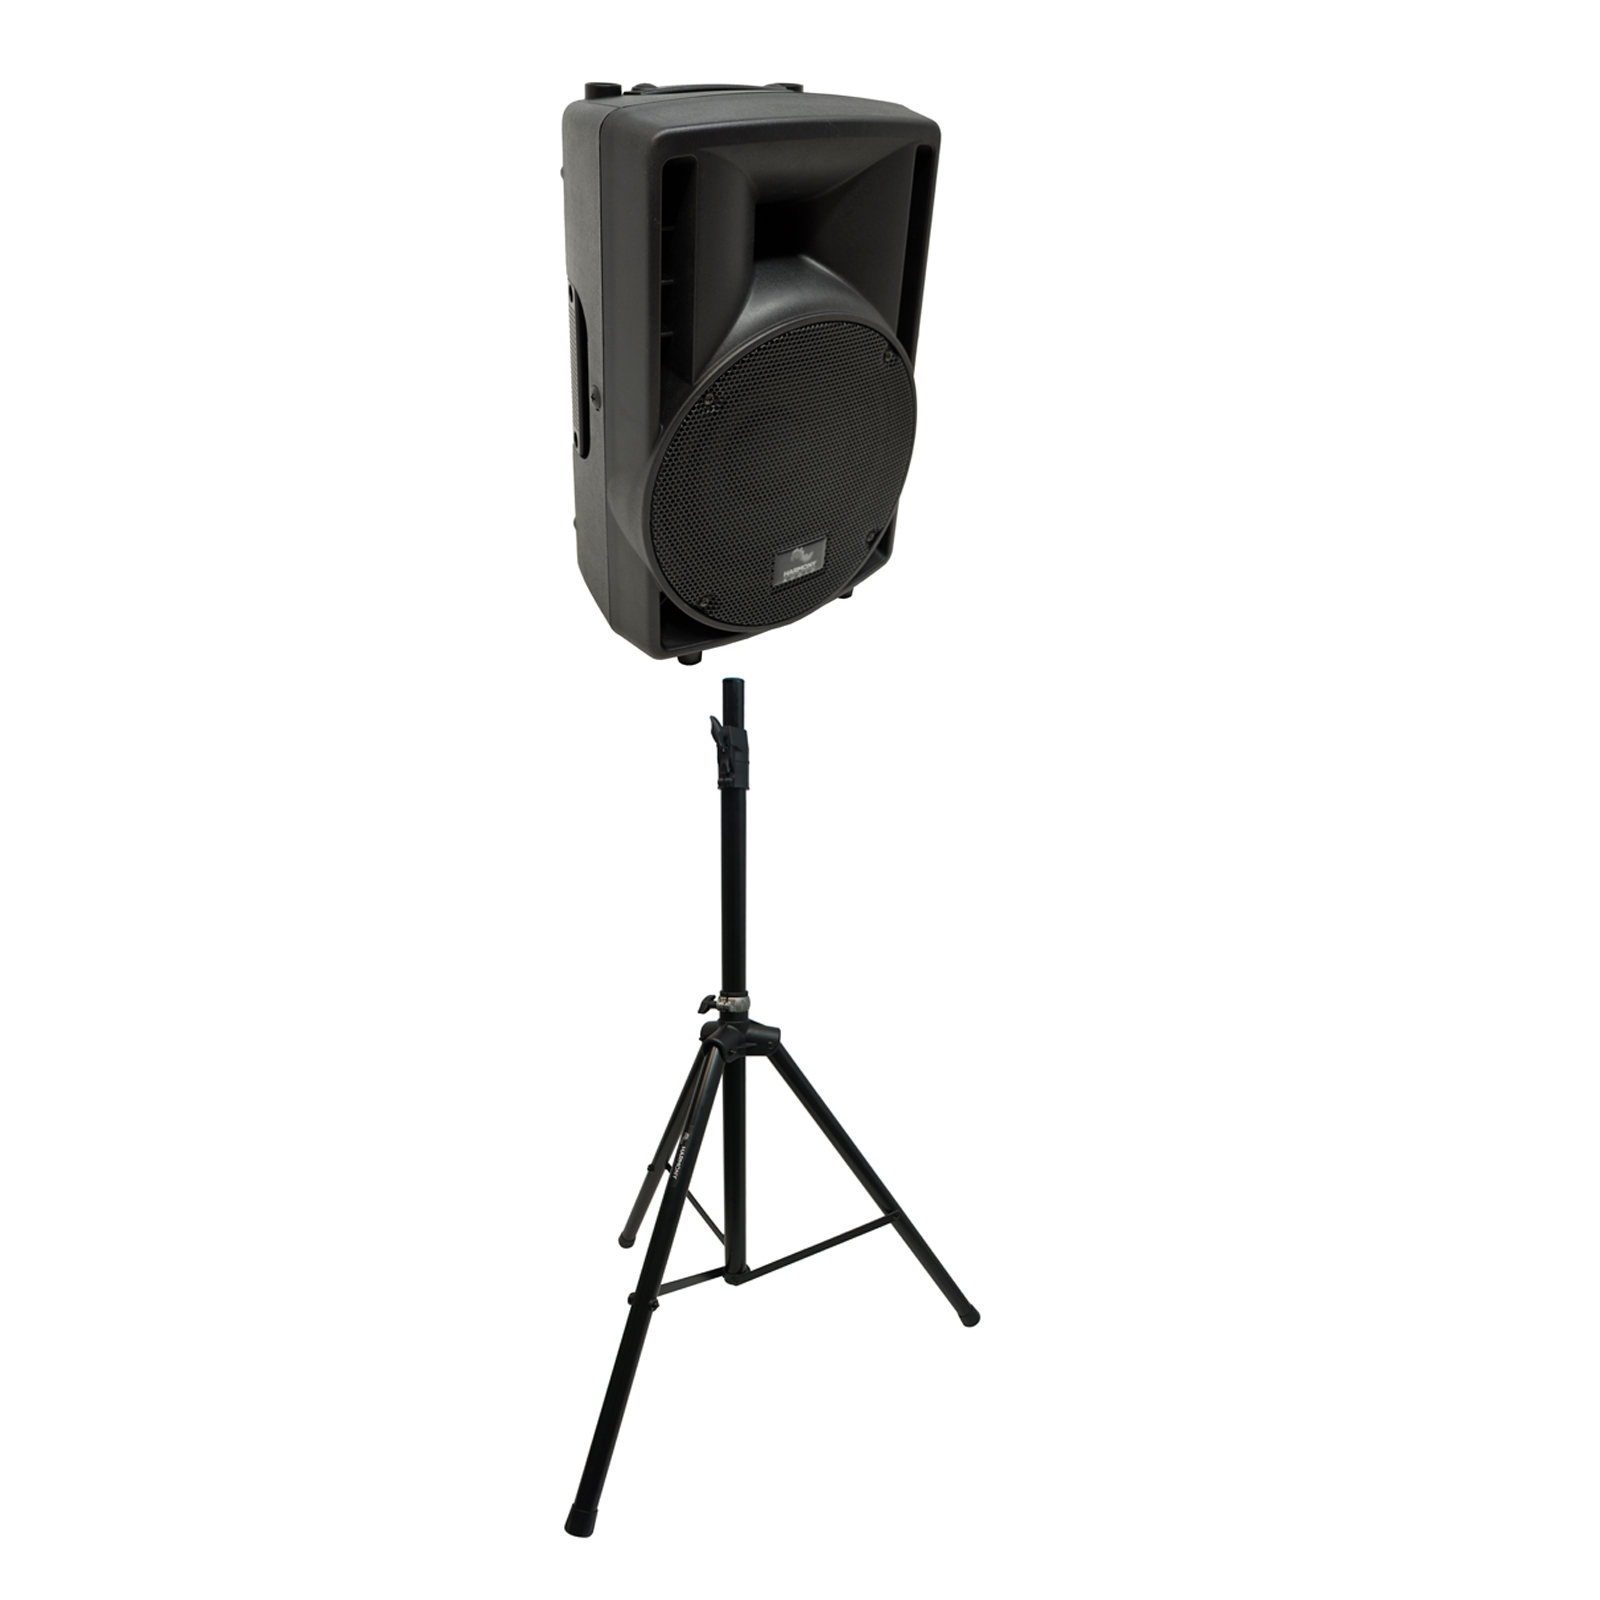 "Harmony Audio Single Tripod Speaker Stand with Harmony Audio Pro DJ Concert Series 8"" Powered 300W PA Speaker Cabinet"